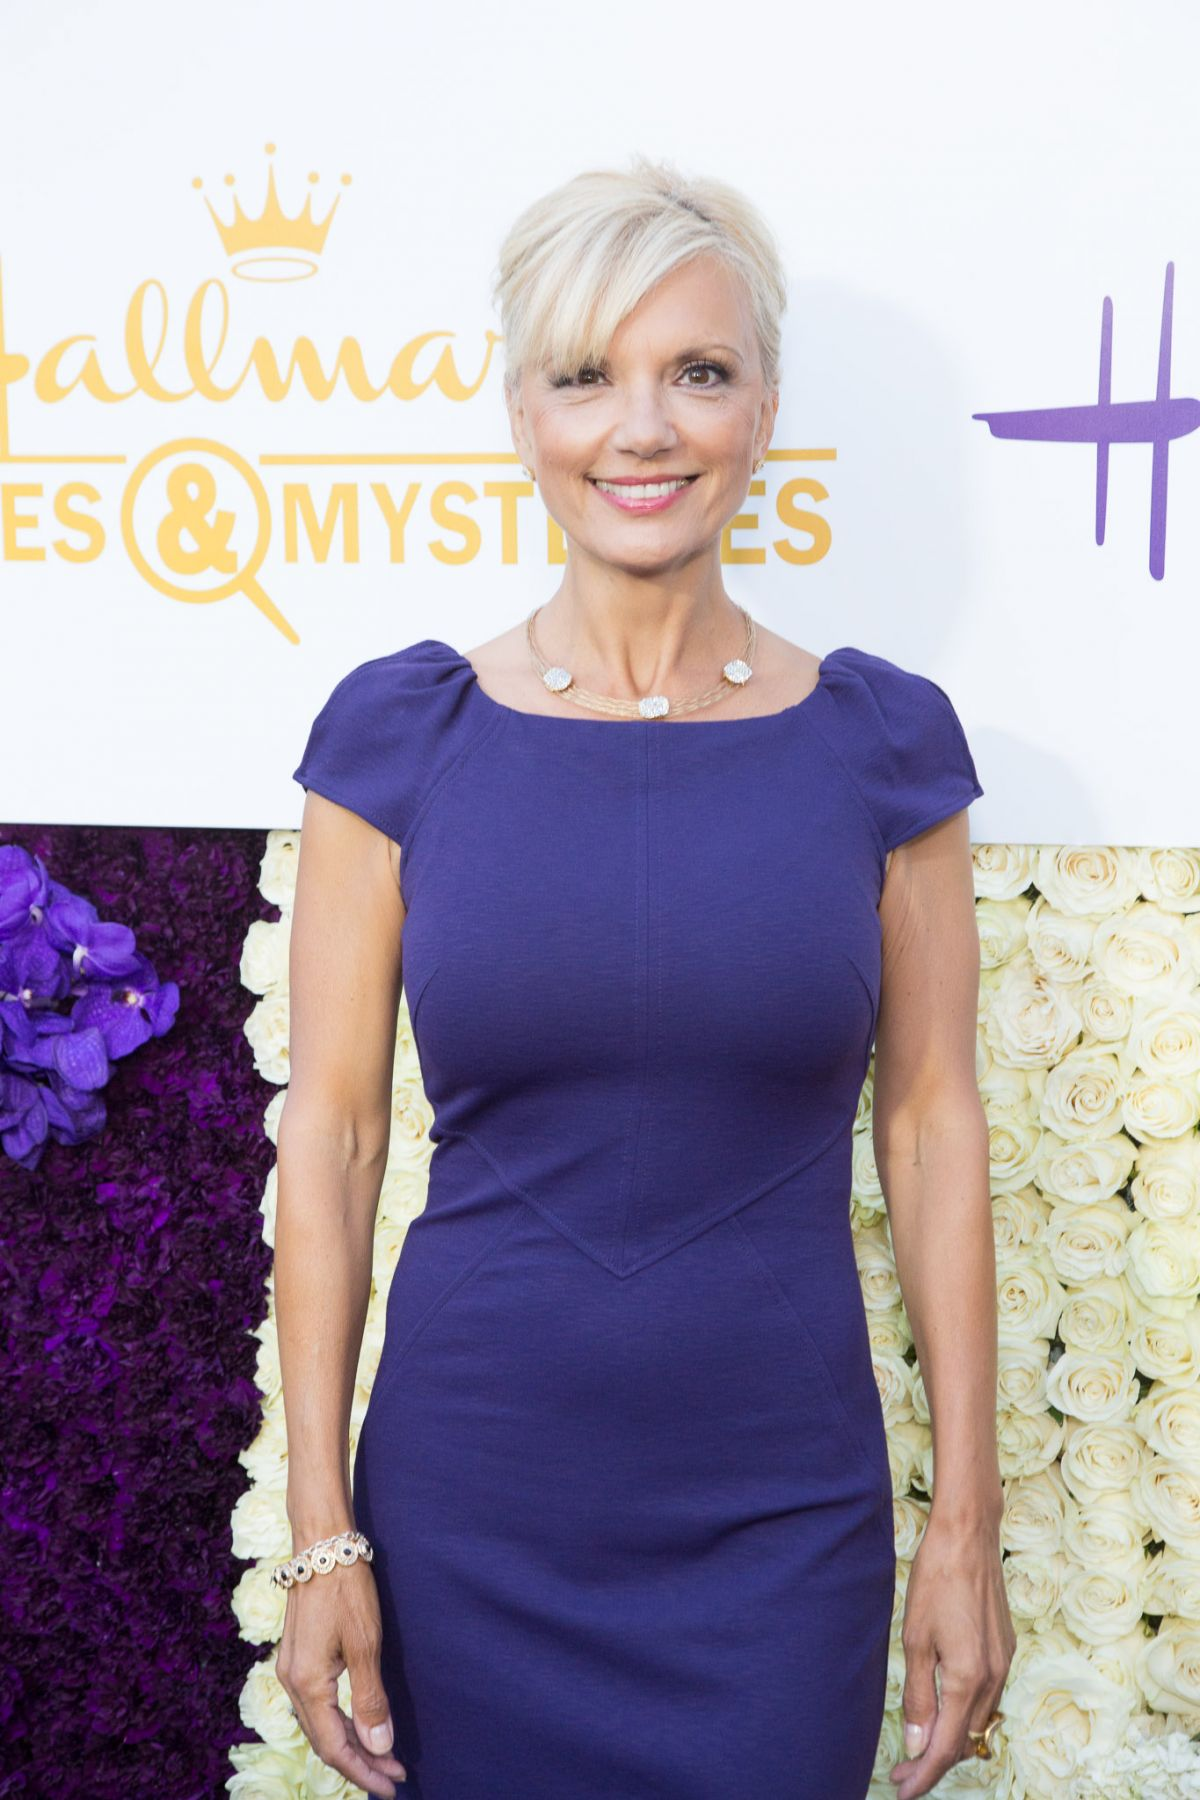 teryl rothery movies and tv showsteryl rothery 2016, teryl rothery young, teryl rothery, teryl rothery imdb, teryl rothery married, teryl rothery weight loss, teryl rothery measurements, teryl rothery twitter, teryl rothery movies and tv shows, teryl rothery death, teryl rothery height, teryl rothery supernatural